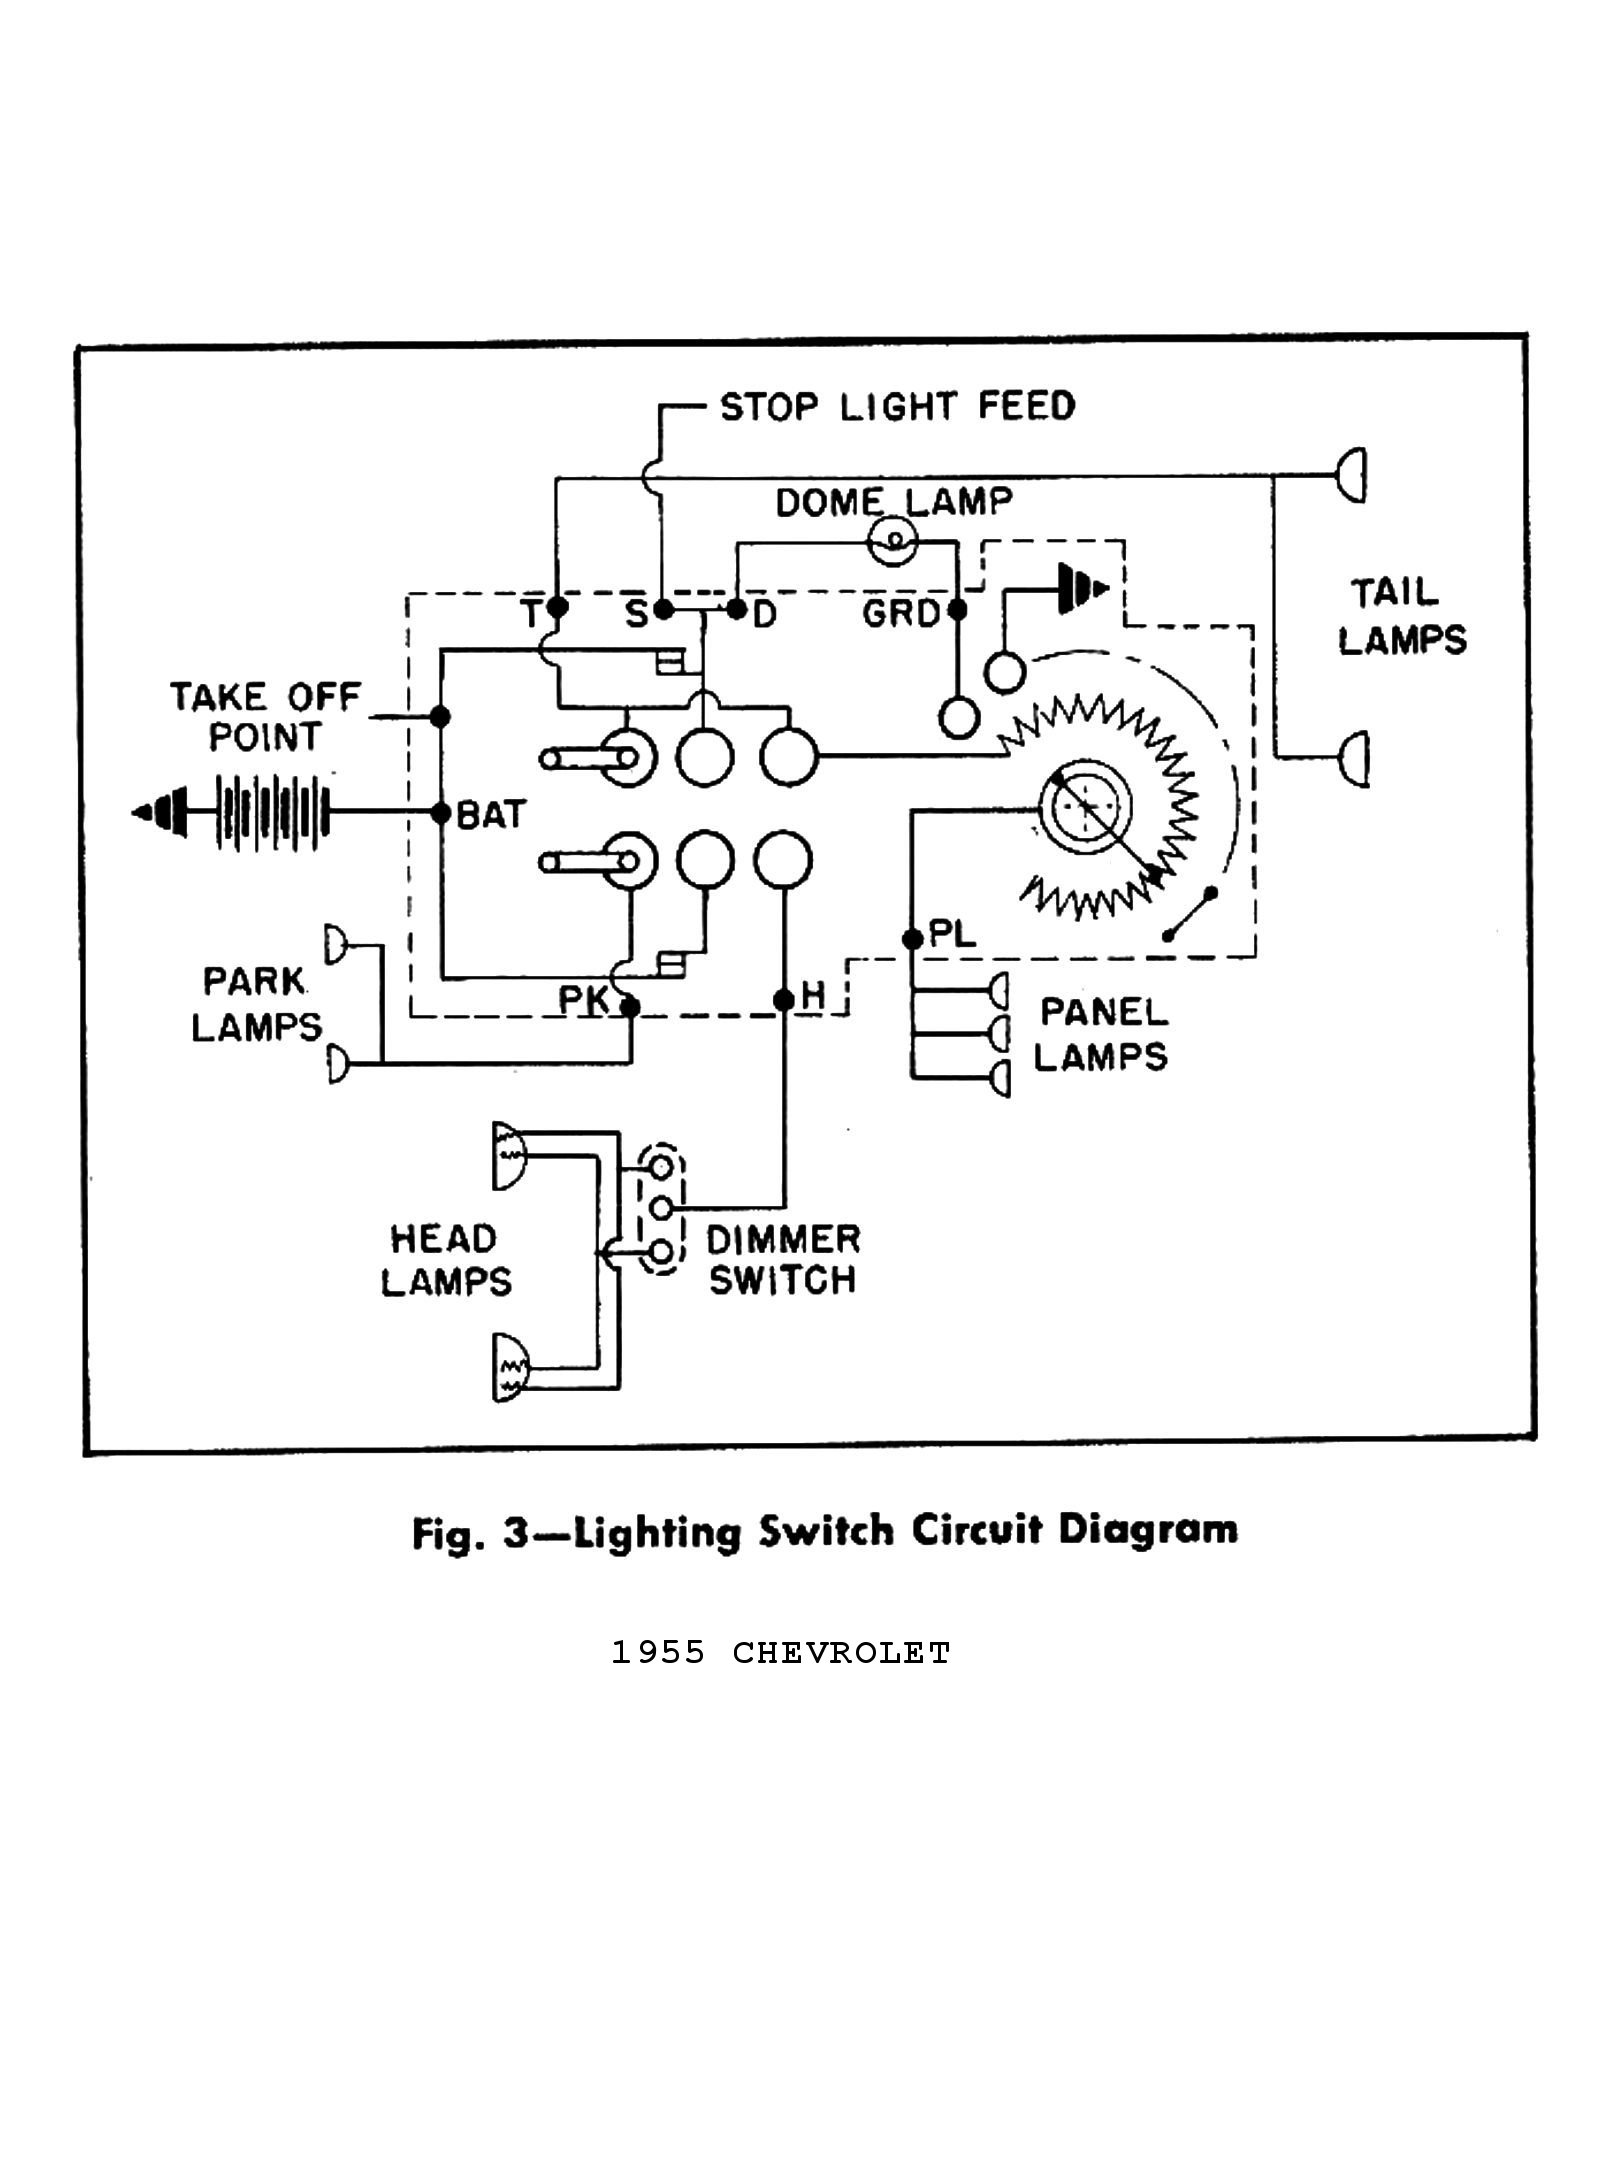 Telecaster Wiring Diagram 1955 Another Blog About Sony Xplod Cd Player For A 54 Chevy Diagrams Rh Oldcarmanualproject Com